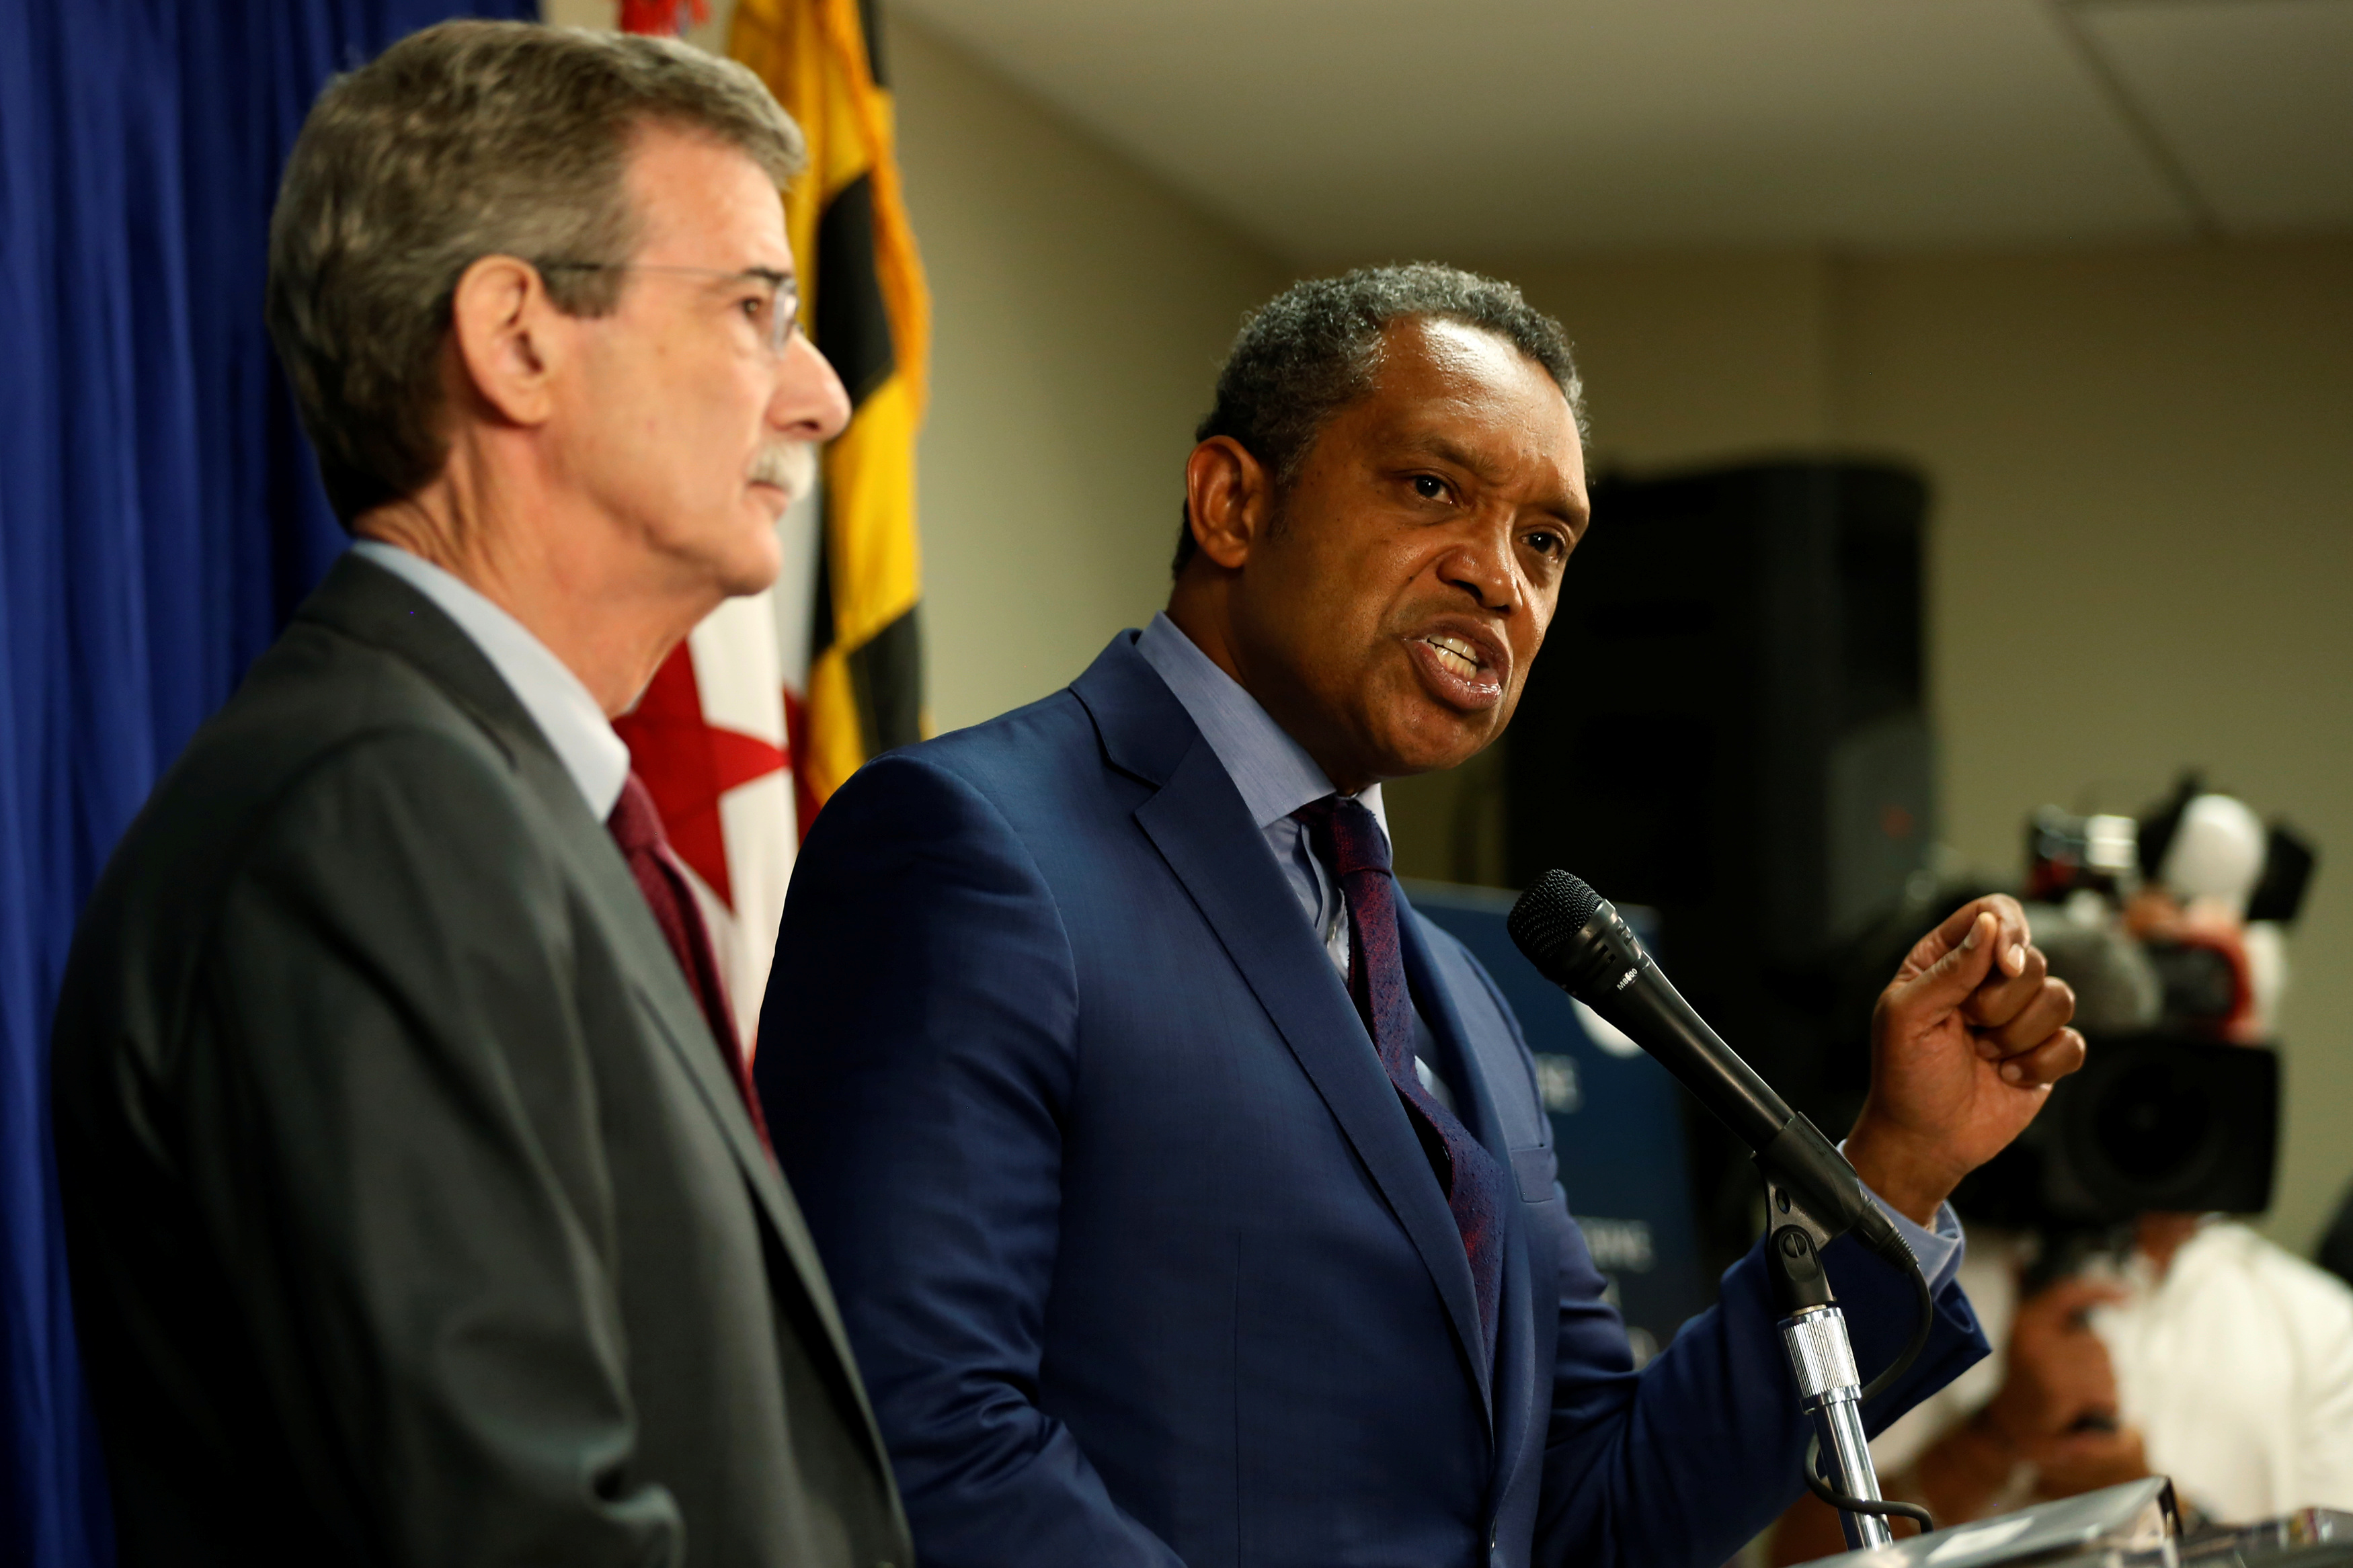 Washington, DC district attorney Karl Racine speaks at a podium during a pre-pandemic press conference.